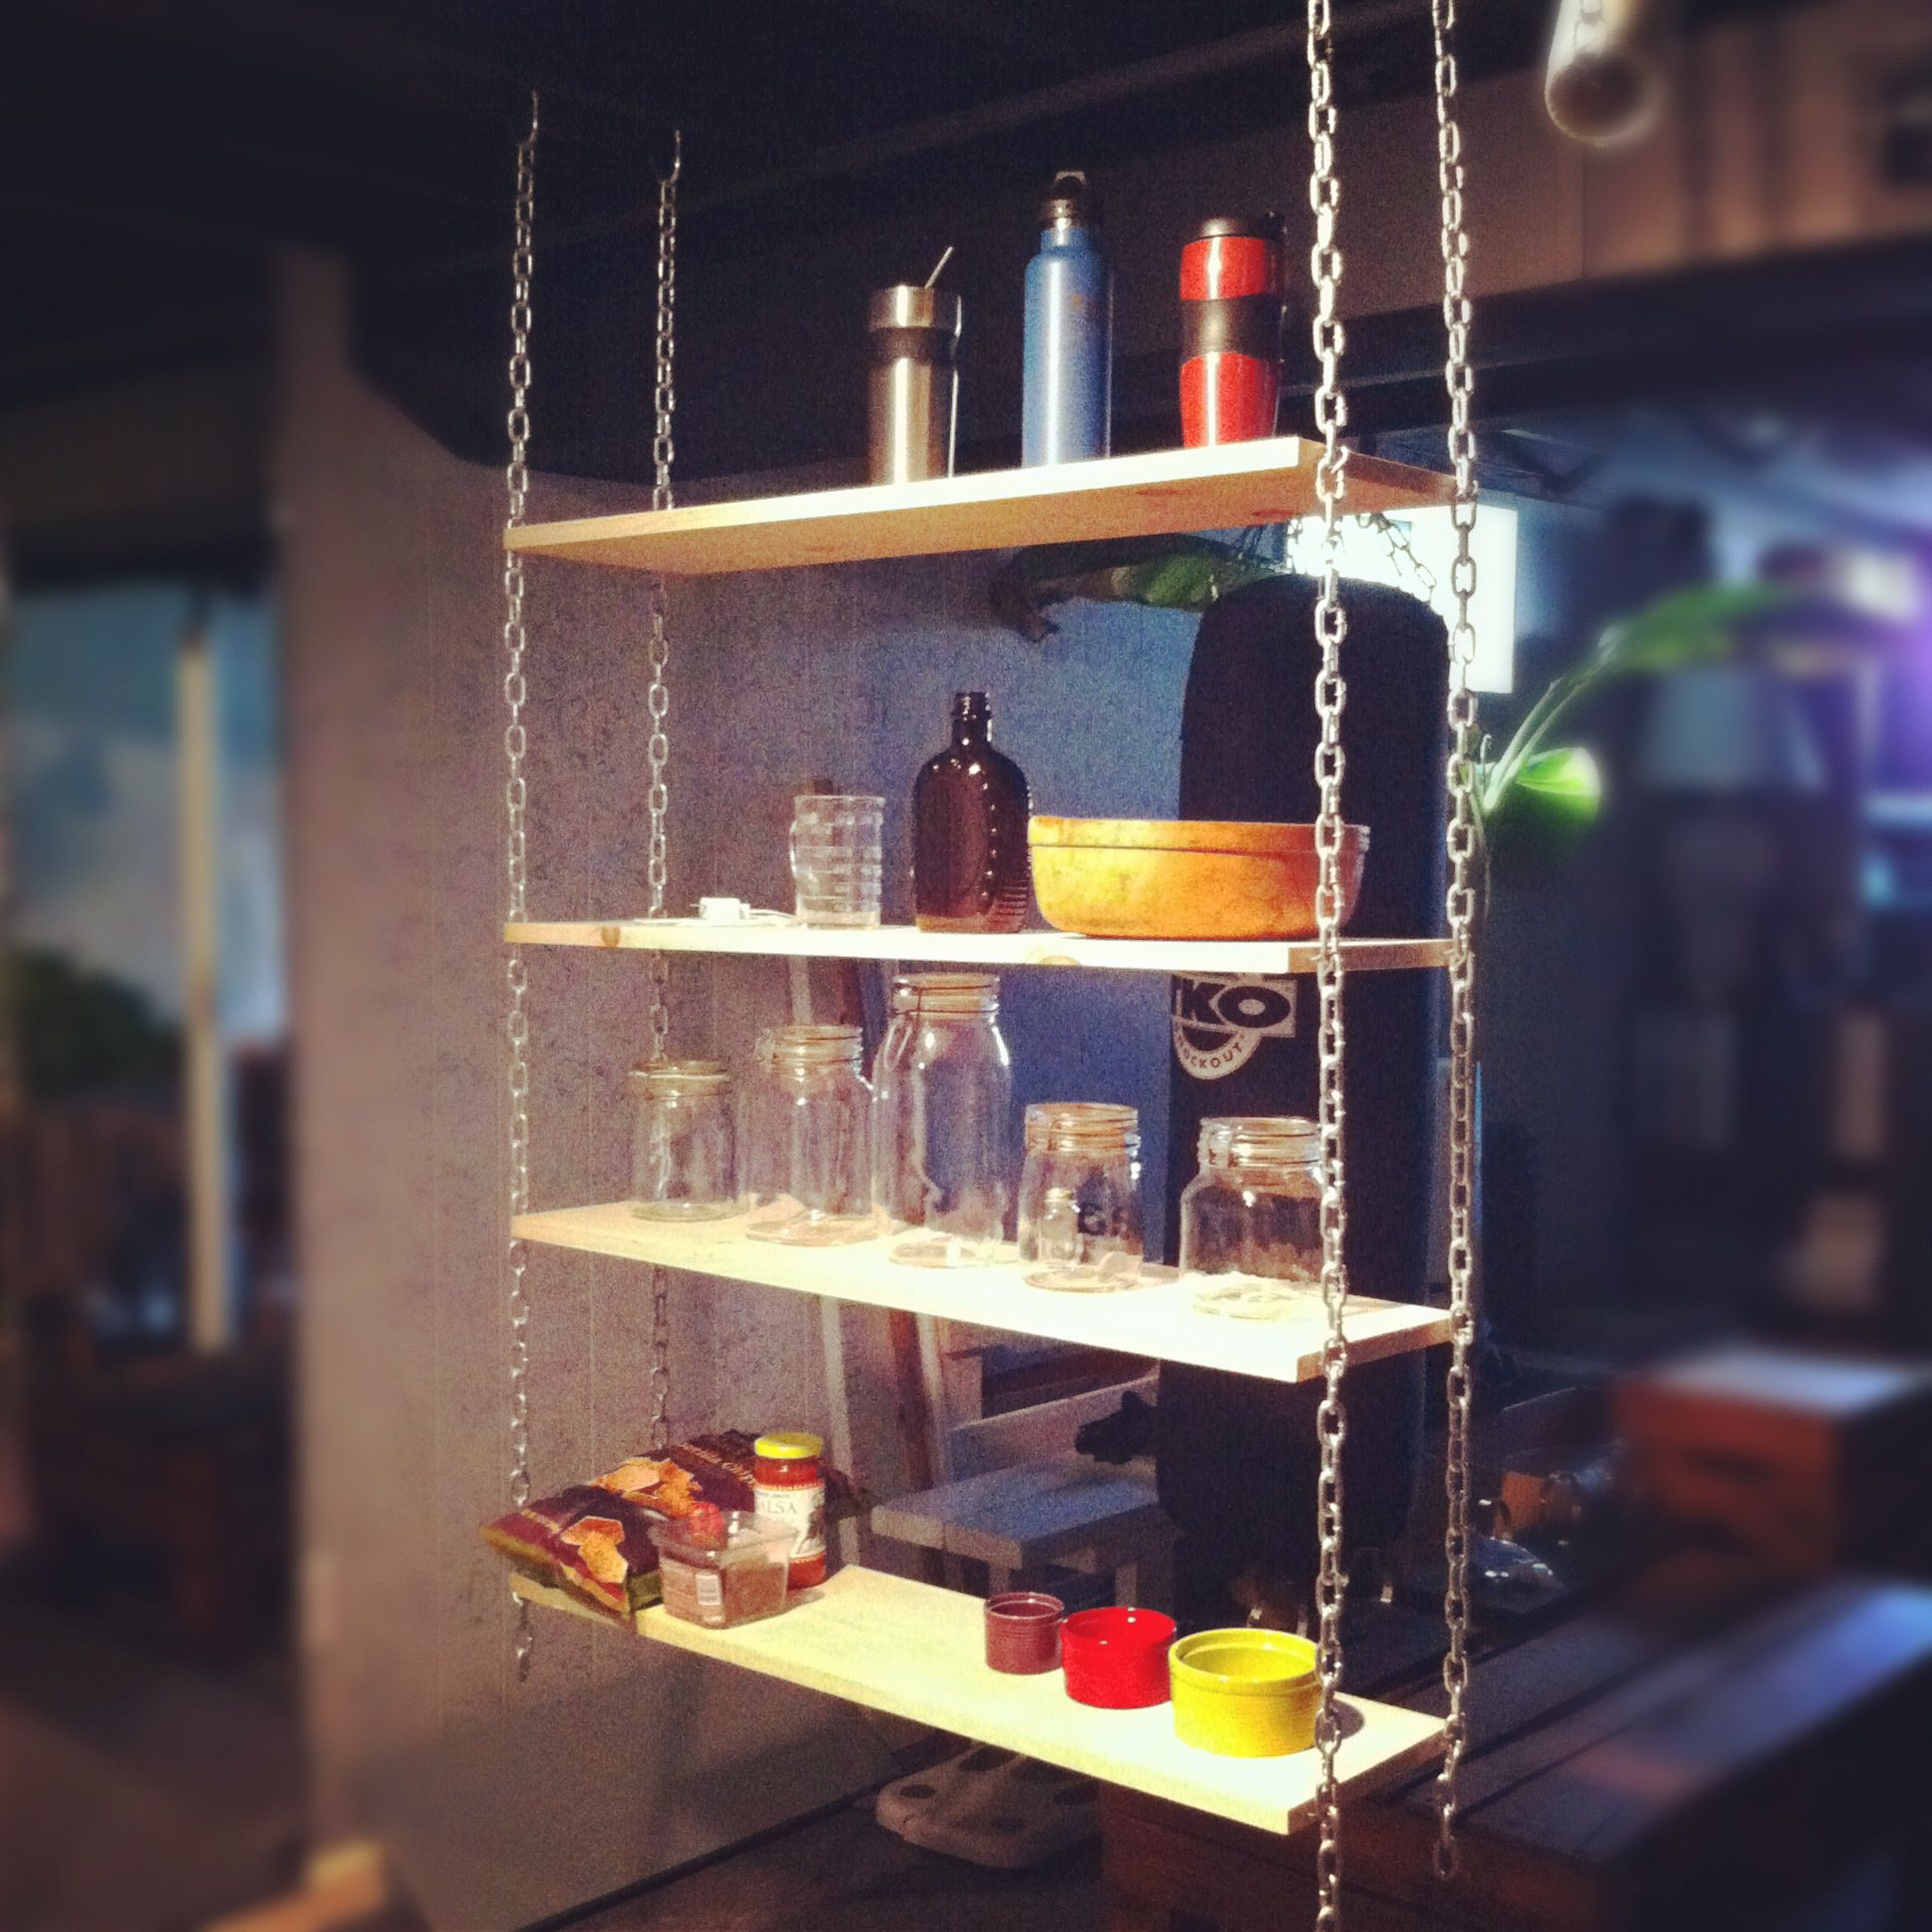 Suspended Shelves From Ceiling: Upcycled Pallet & Chain Hanging Shelves (adjustable